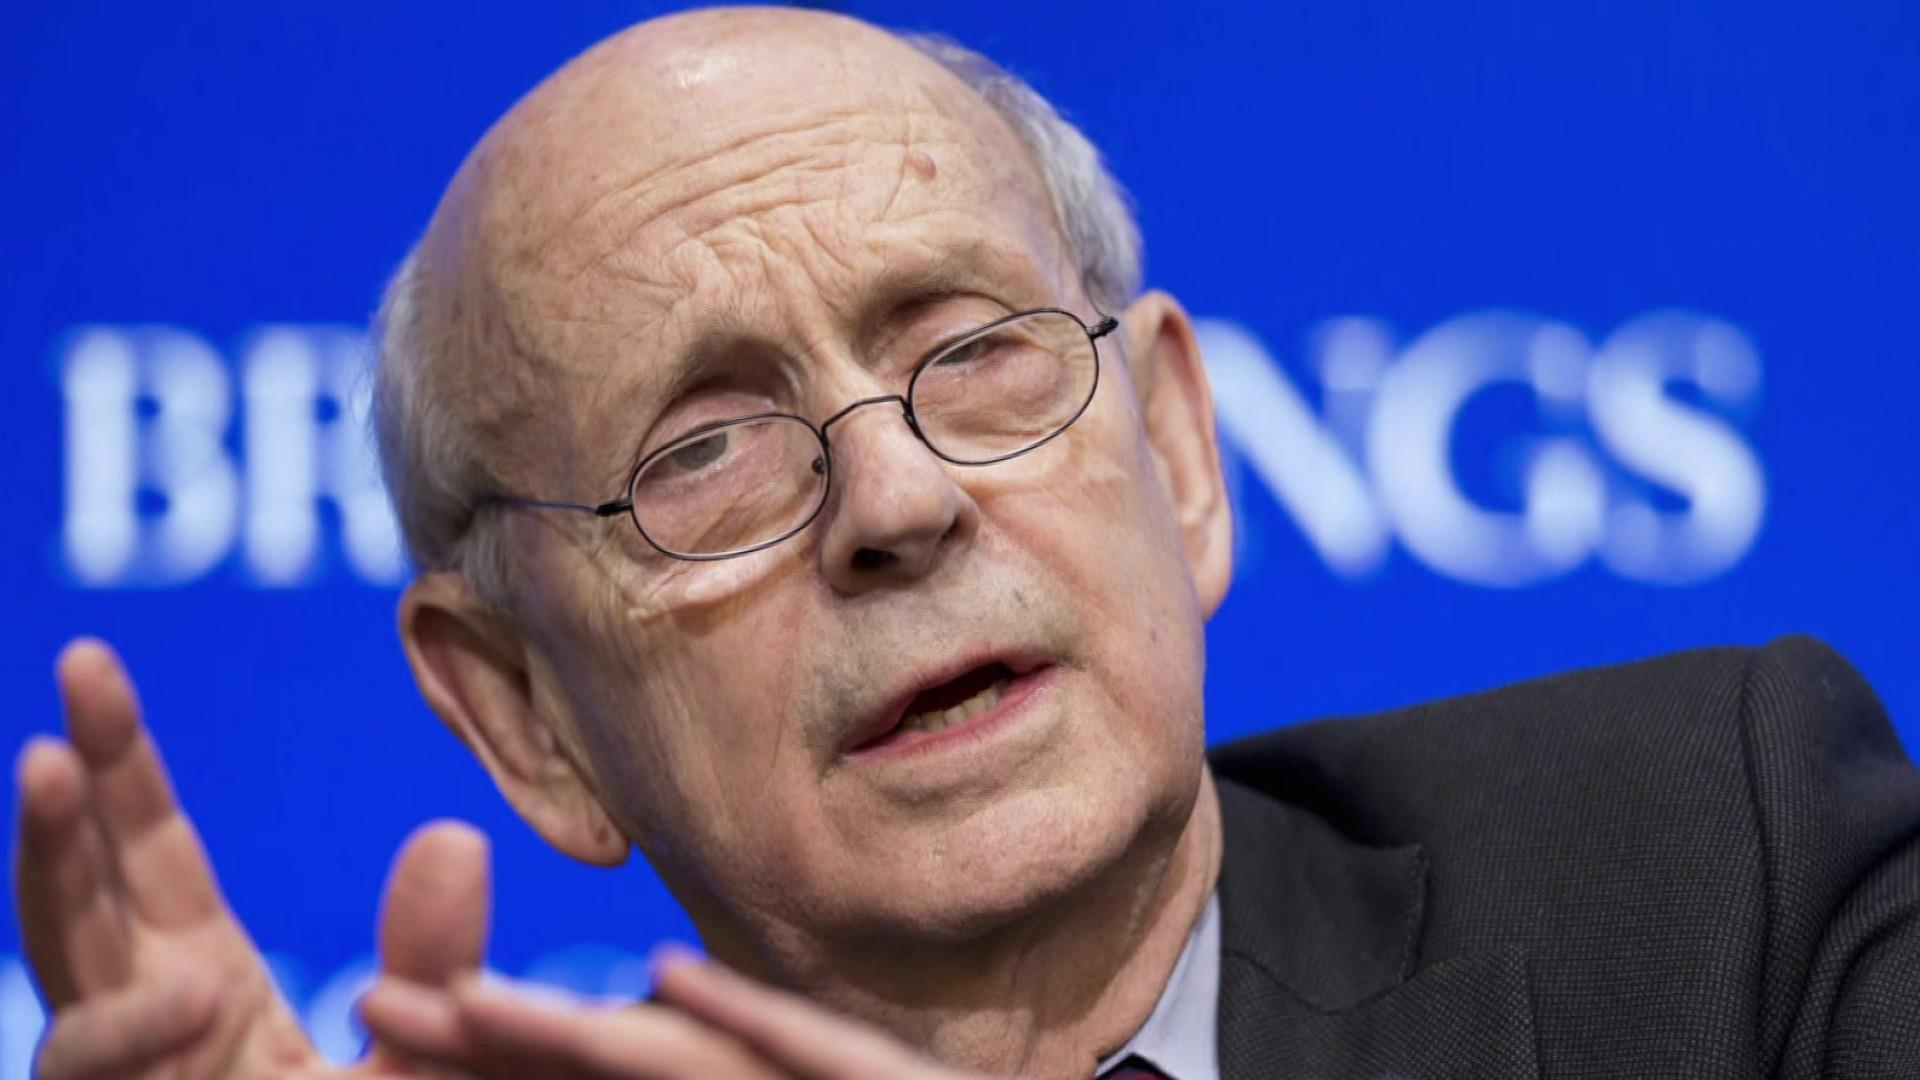 Pressure builds for Justice Breyer to retire from the Supreme Court thumbnail